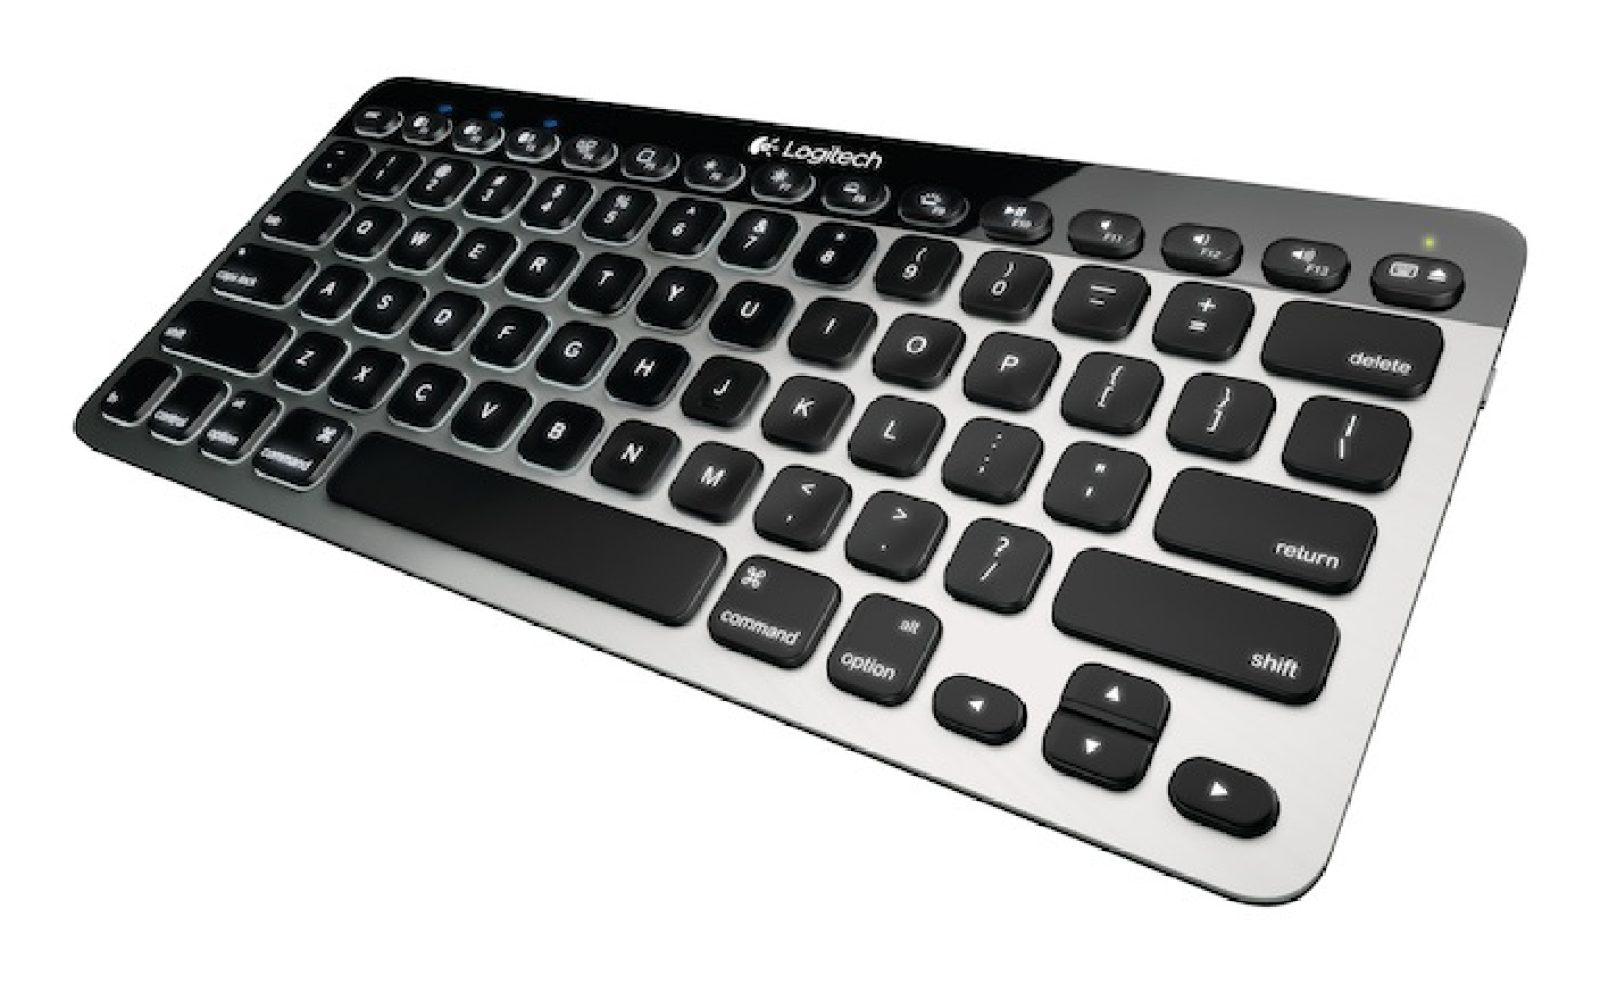 Review Logitech K811 Bluetooth Easy Switch Keyboard A Month Later Wireless K380 It Replaces Three Apple Keyboards